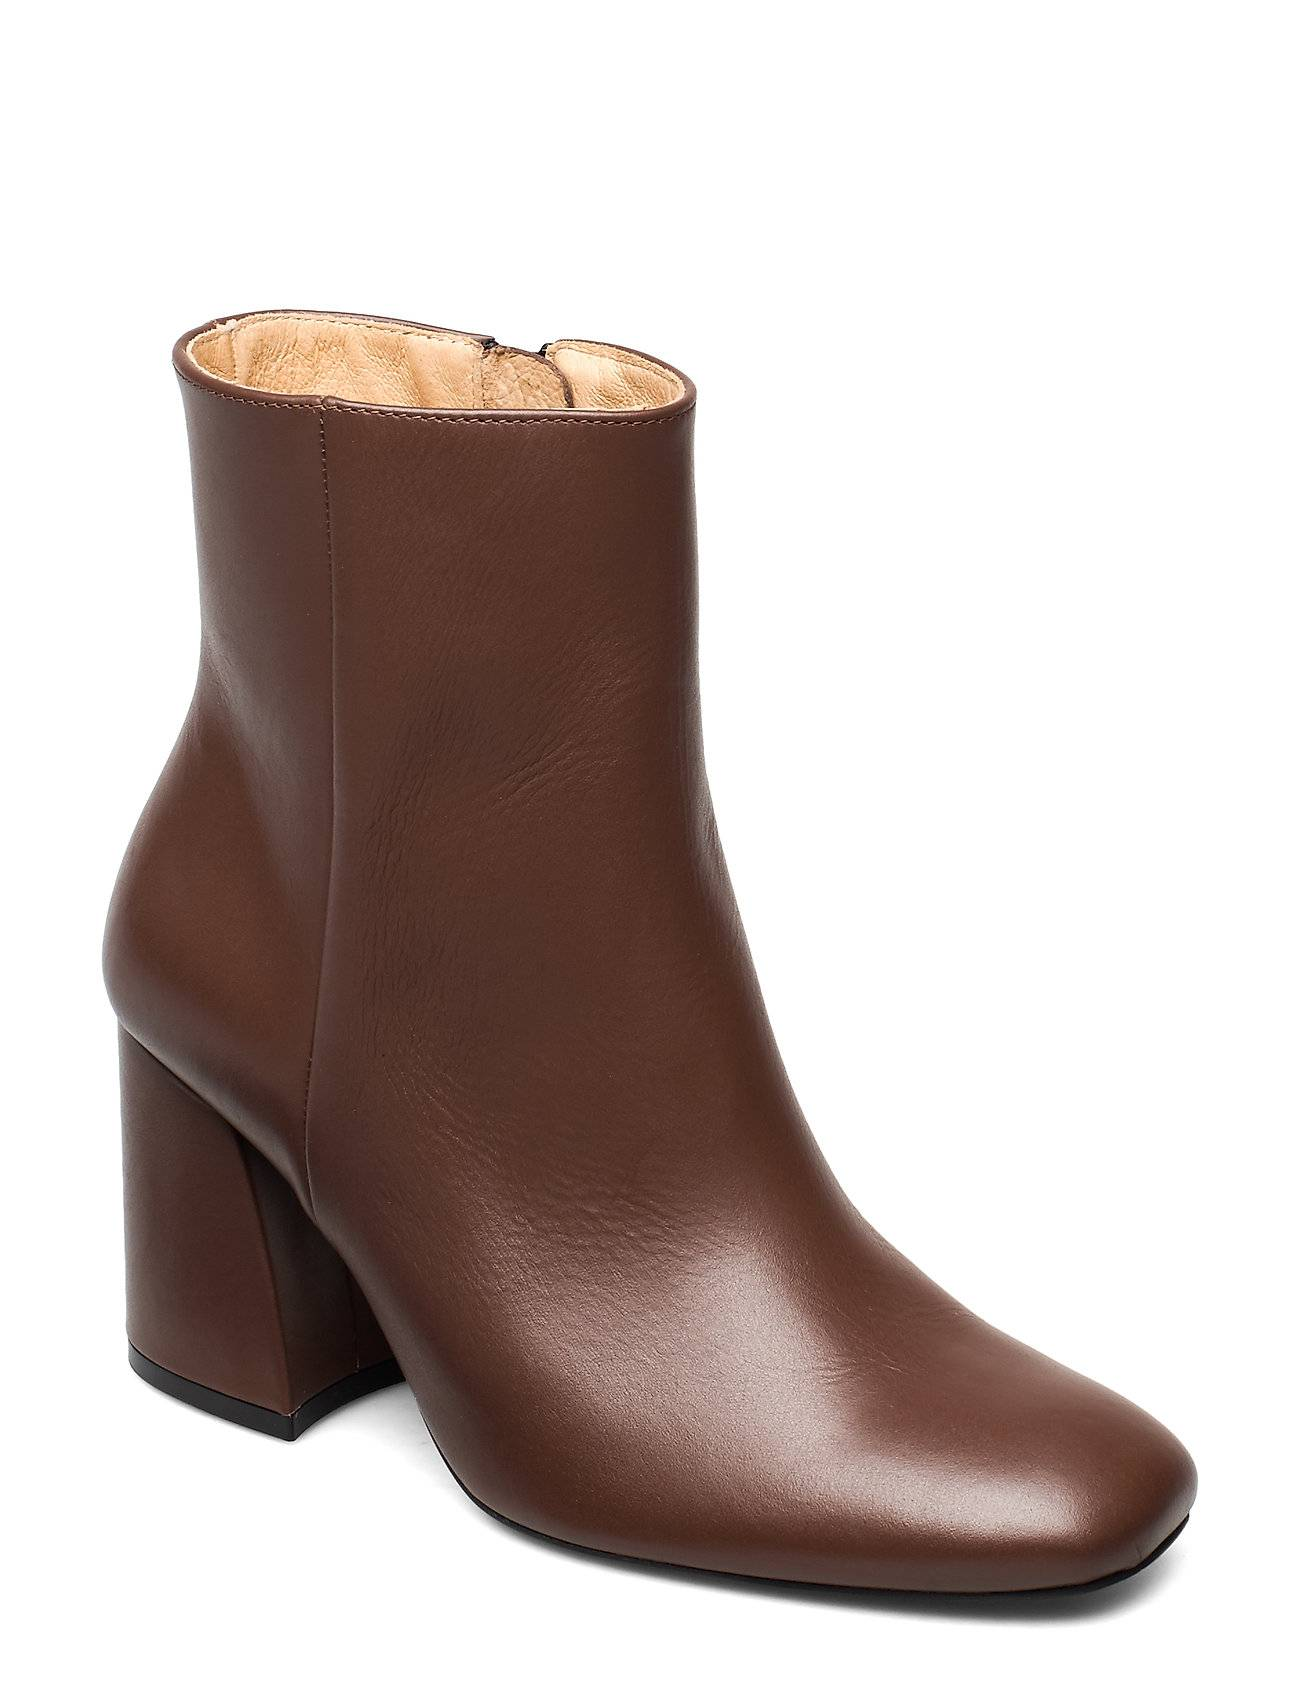 ANNY NORD Ms Steinem Shoes Boots Ankle Boots Ankle Boots With Heel Ruskea